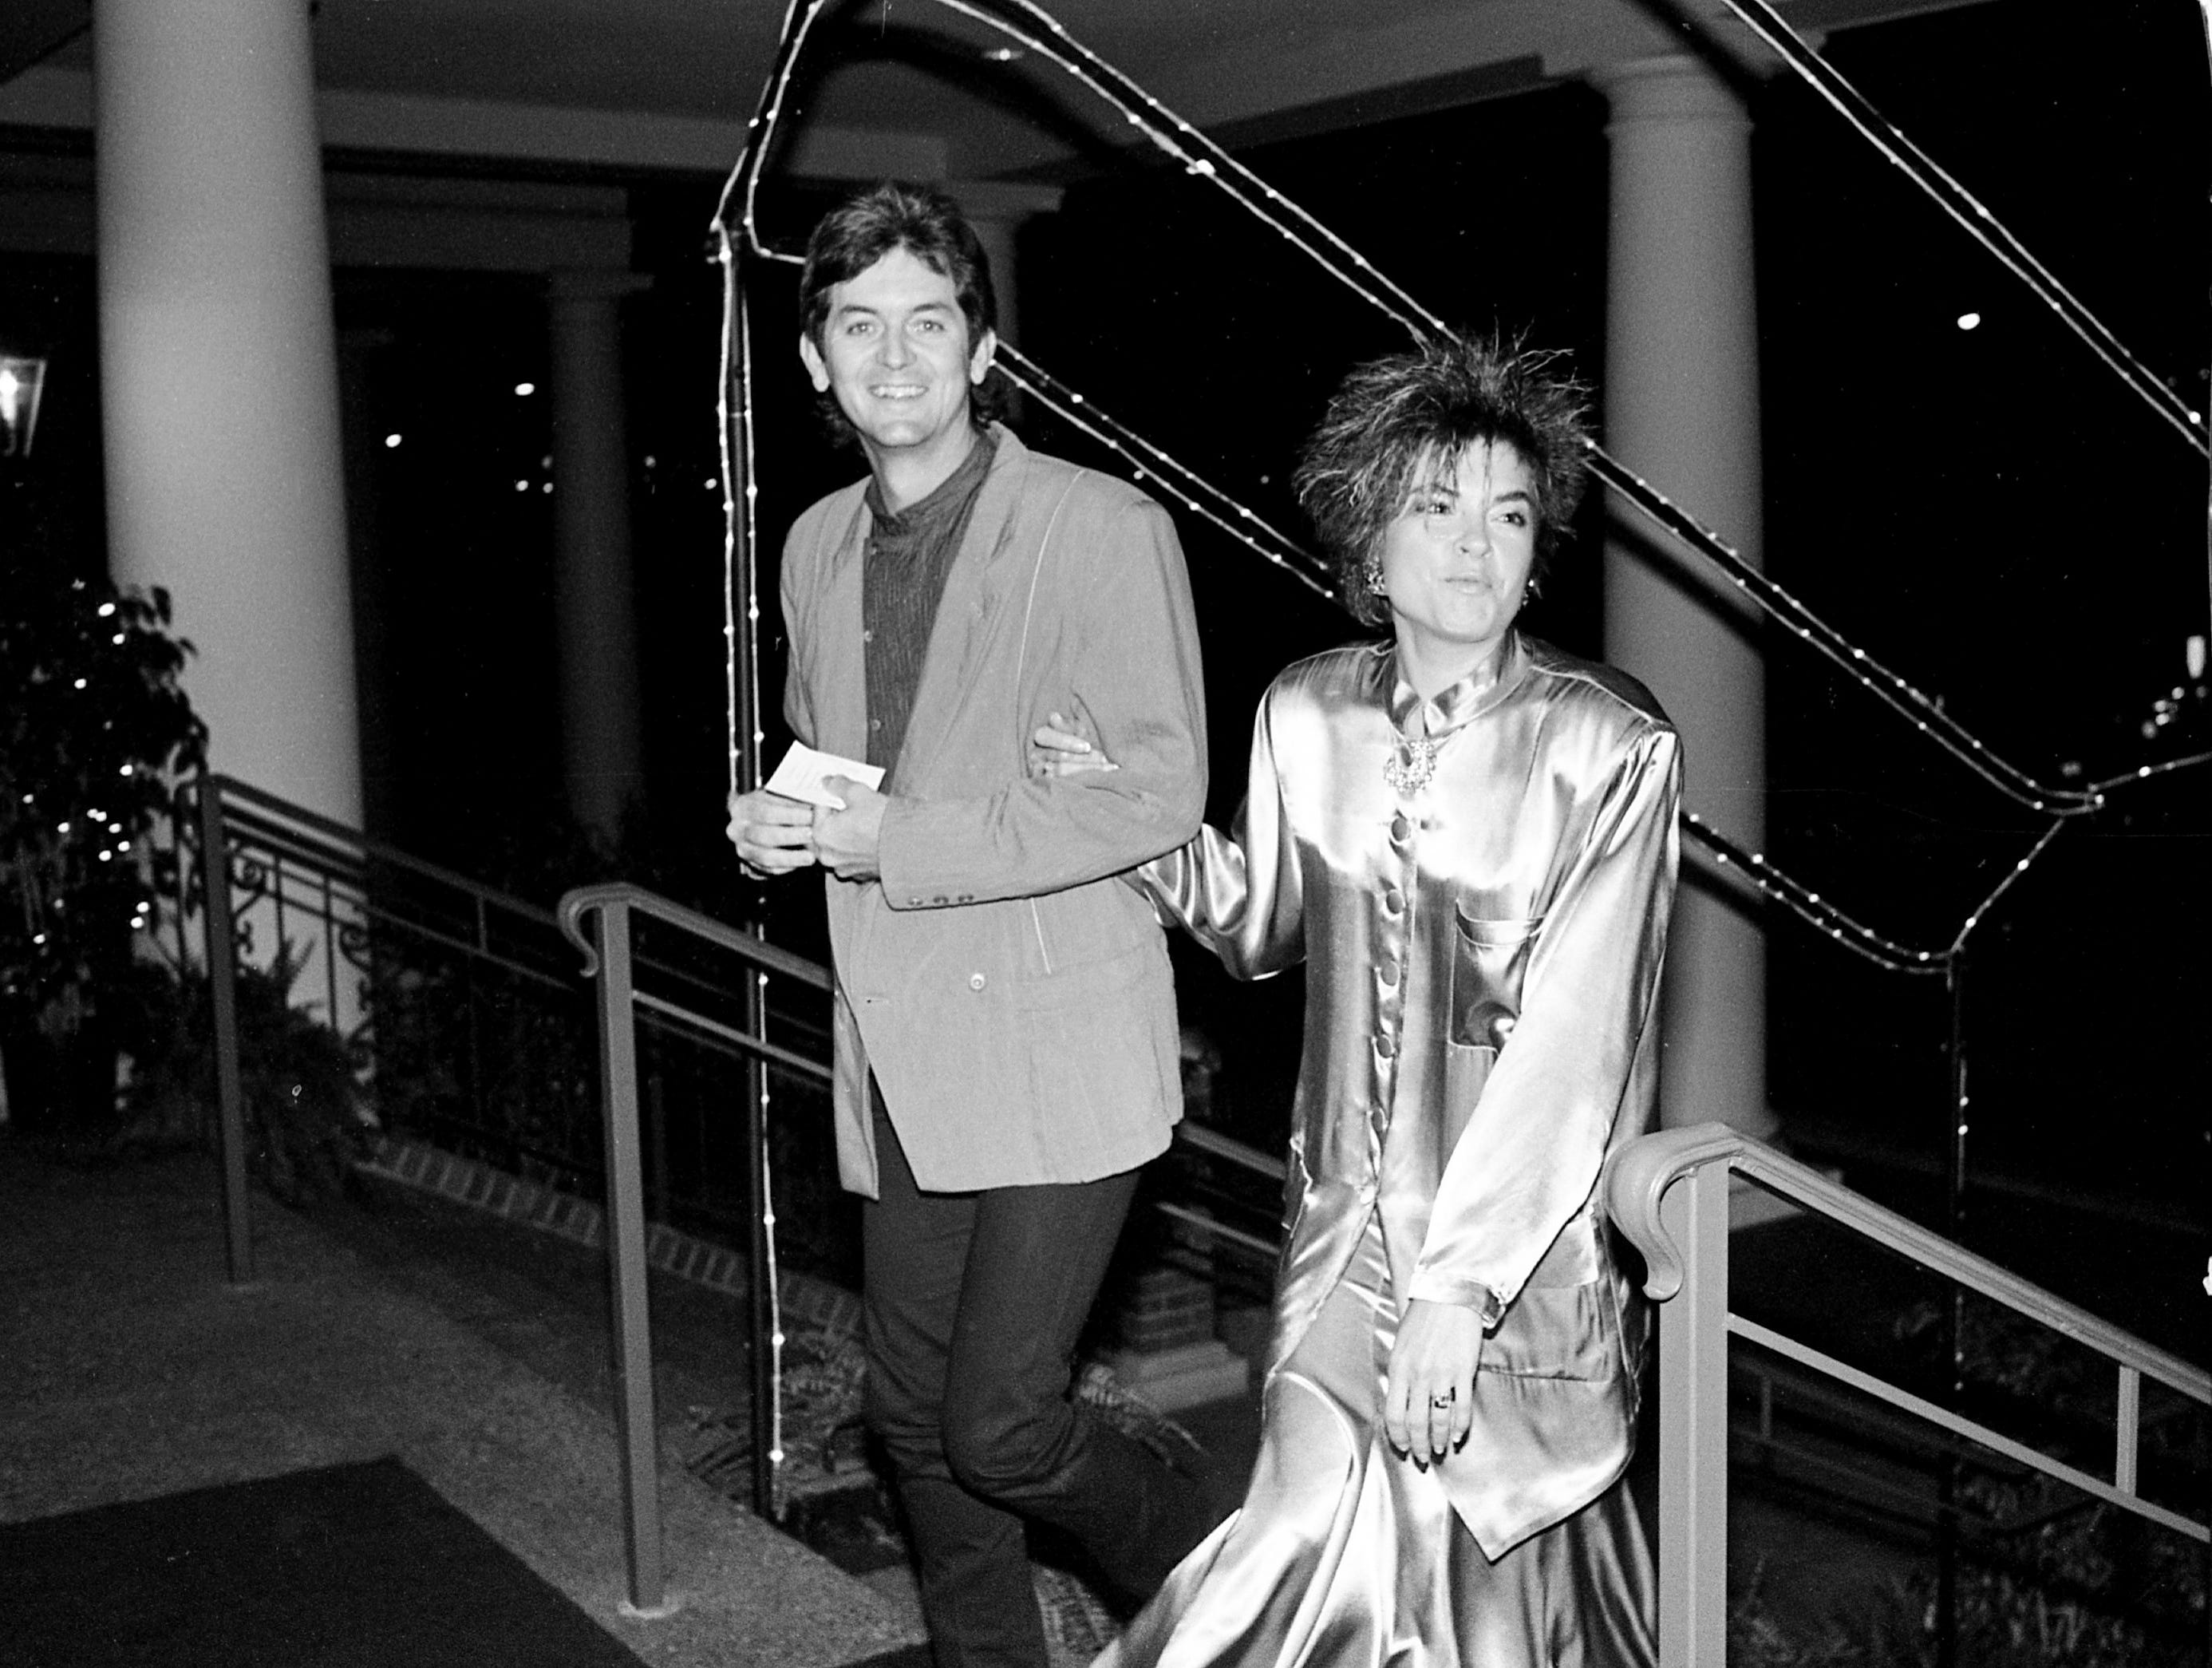 Rodney Crowell and wife Rosanne Cash arrive for the annual ASCAP Awards gala at the Opryland Hotel on Oct. 16, 1985, in Nashville, Tennessee.